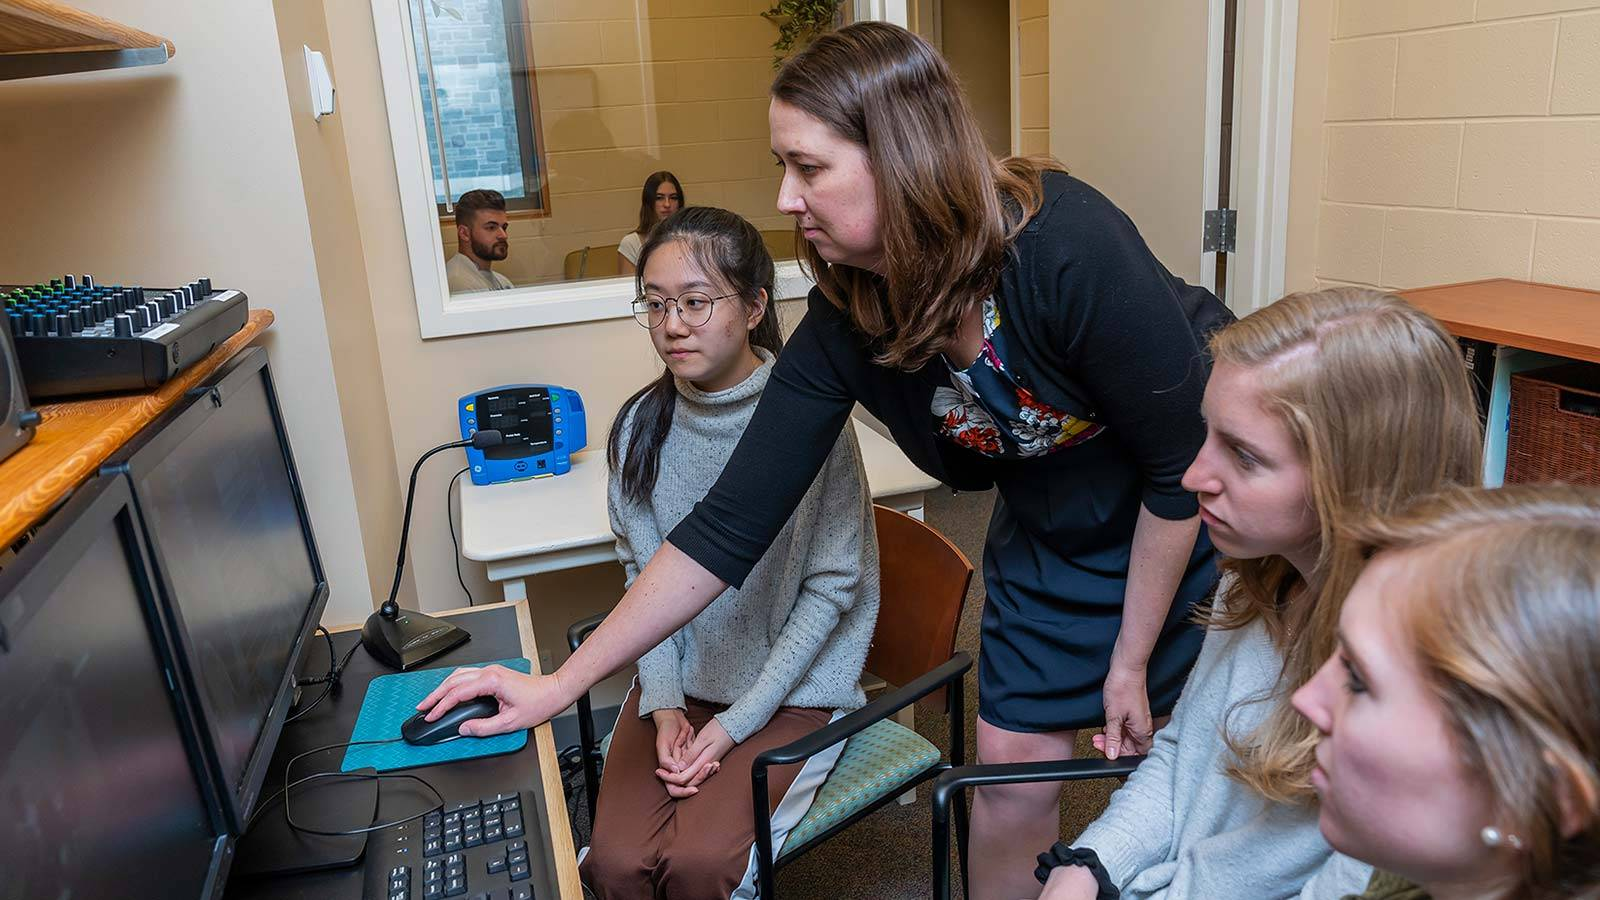 Jen Tomlinson and students work at a computer while research subjects are monitored in the background